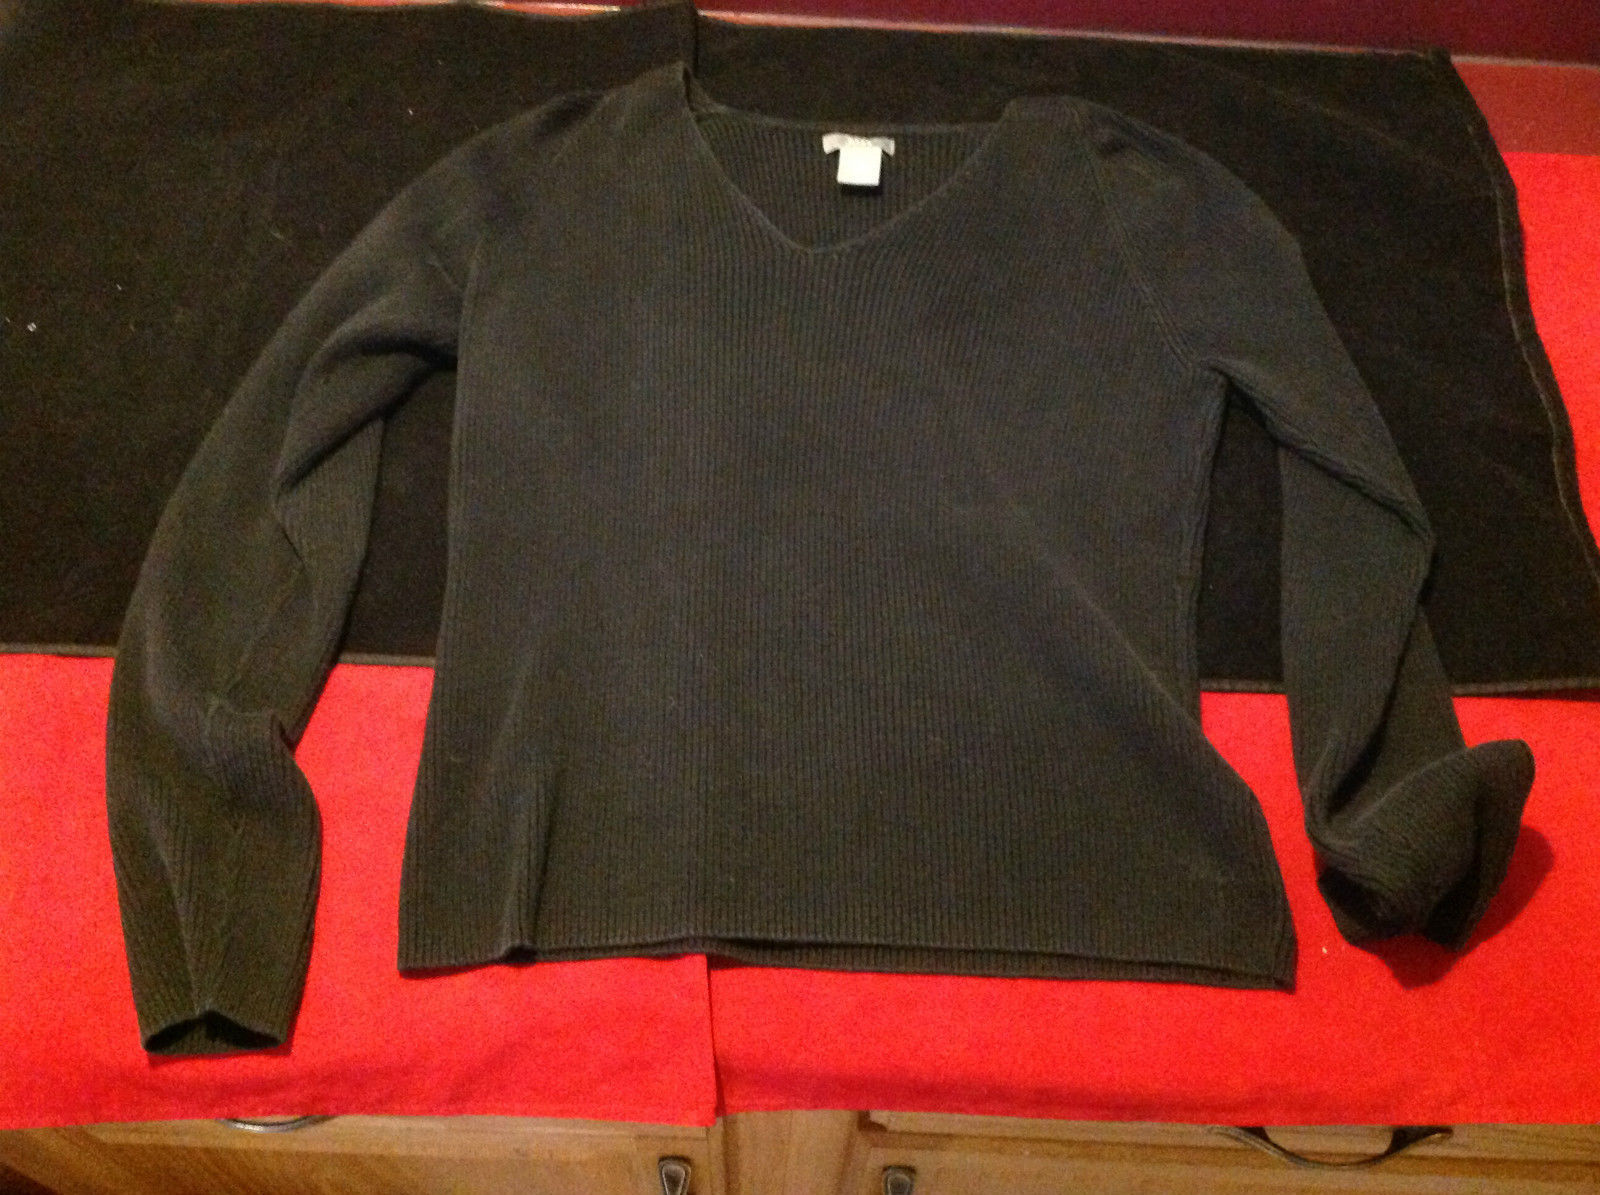 Bass Ladies Long Sleeve Black Top V-Neck Made in Hong Kong Size Large